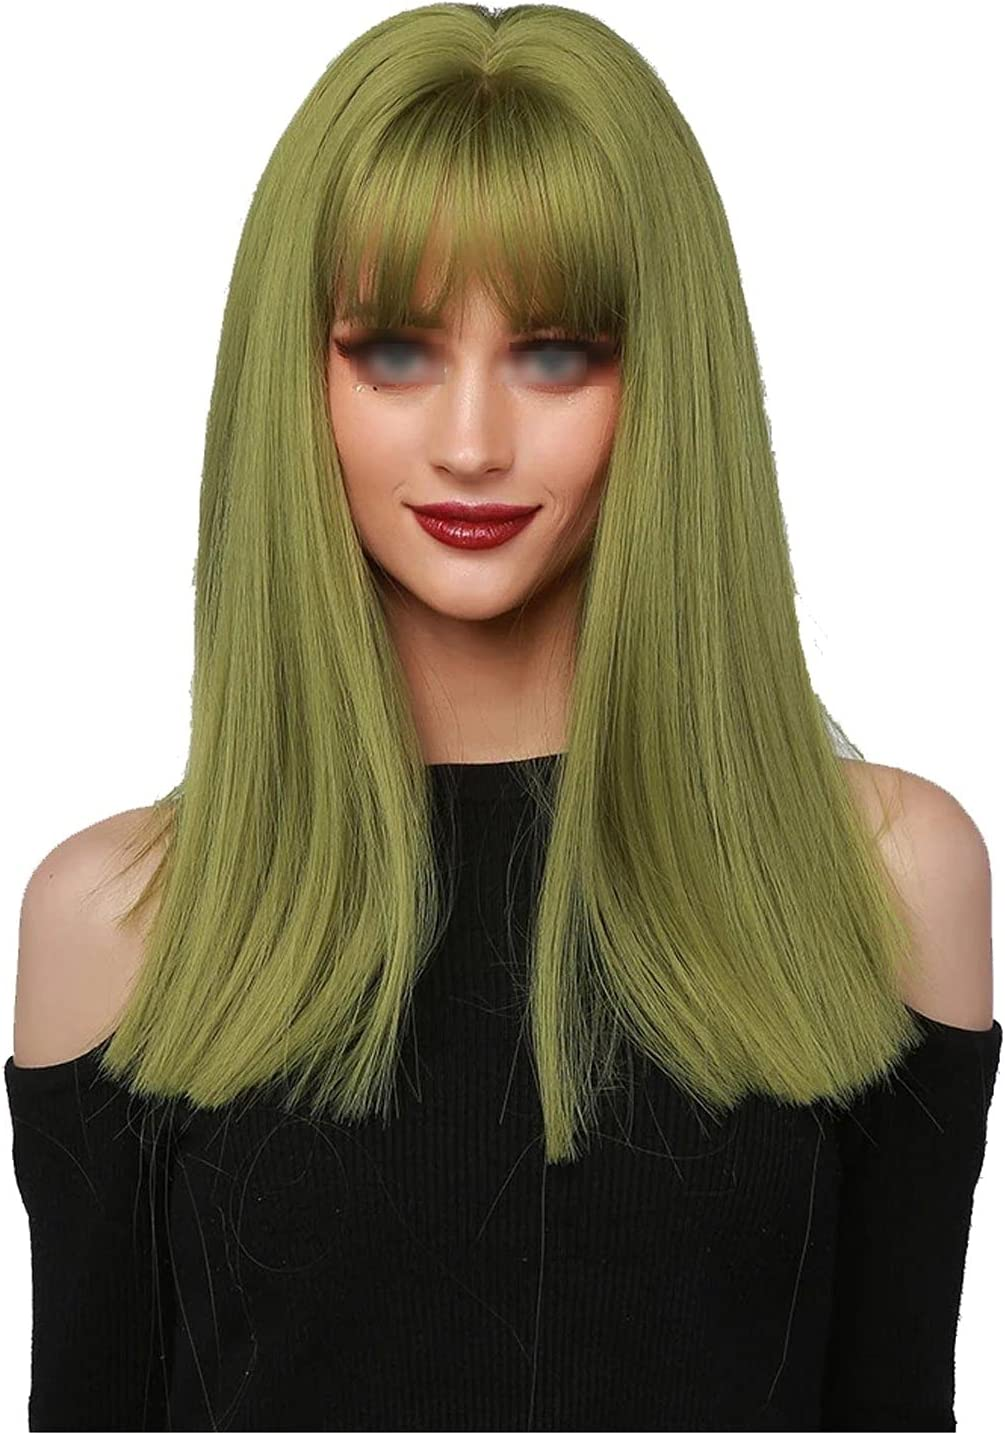 DHCZZRS774 Wigs 16inch Synthetic quality assurance Wig Long Medium Green Light Hai Very popular